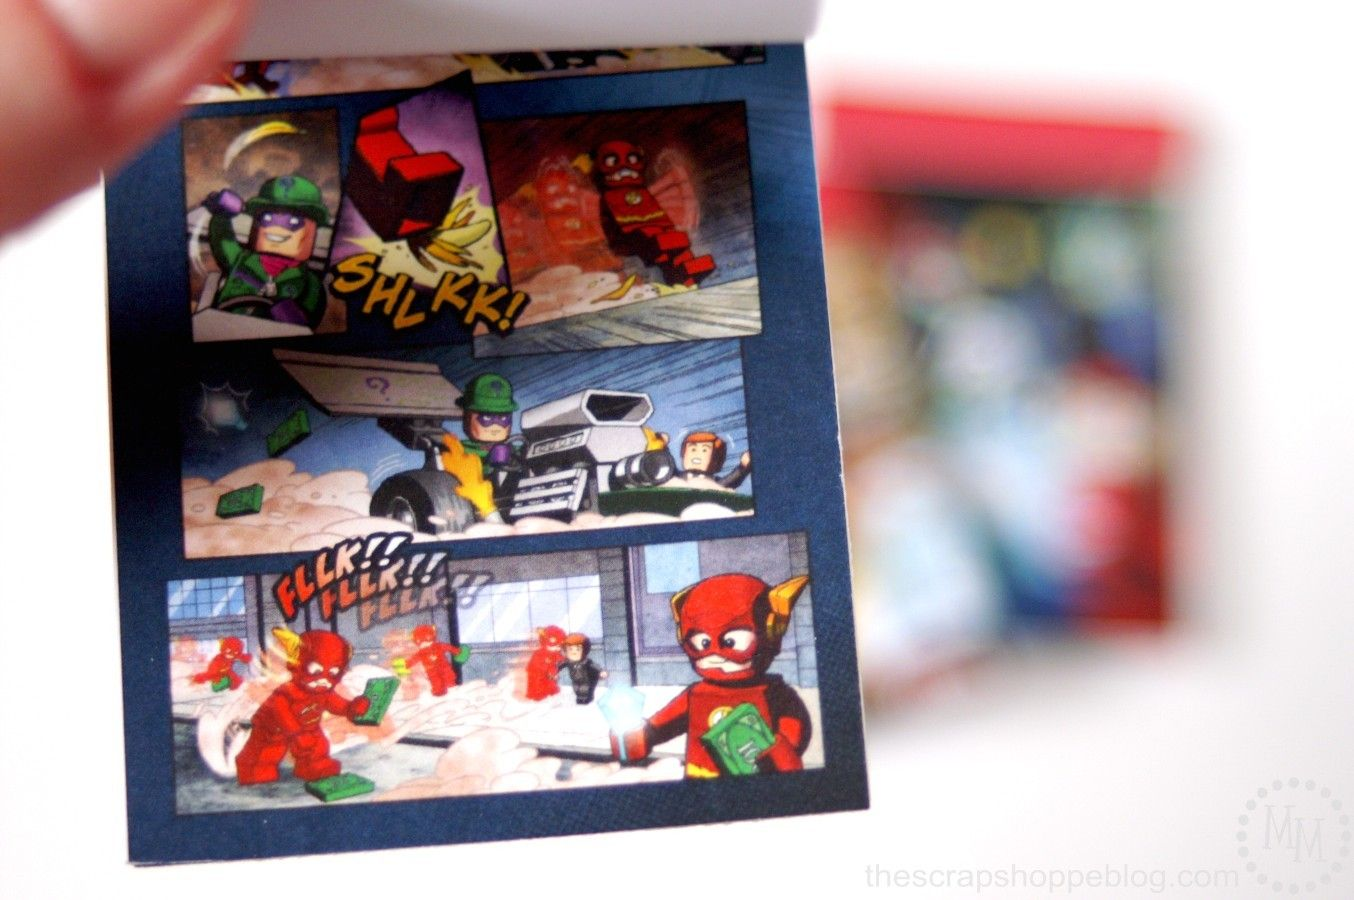 Share Tweet Pin Mail Last week I shared our LEGO Superhero birthday party. Today I wanted to show you how easy the minicomic books ...